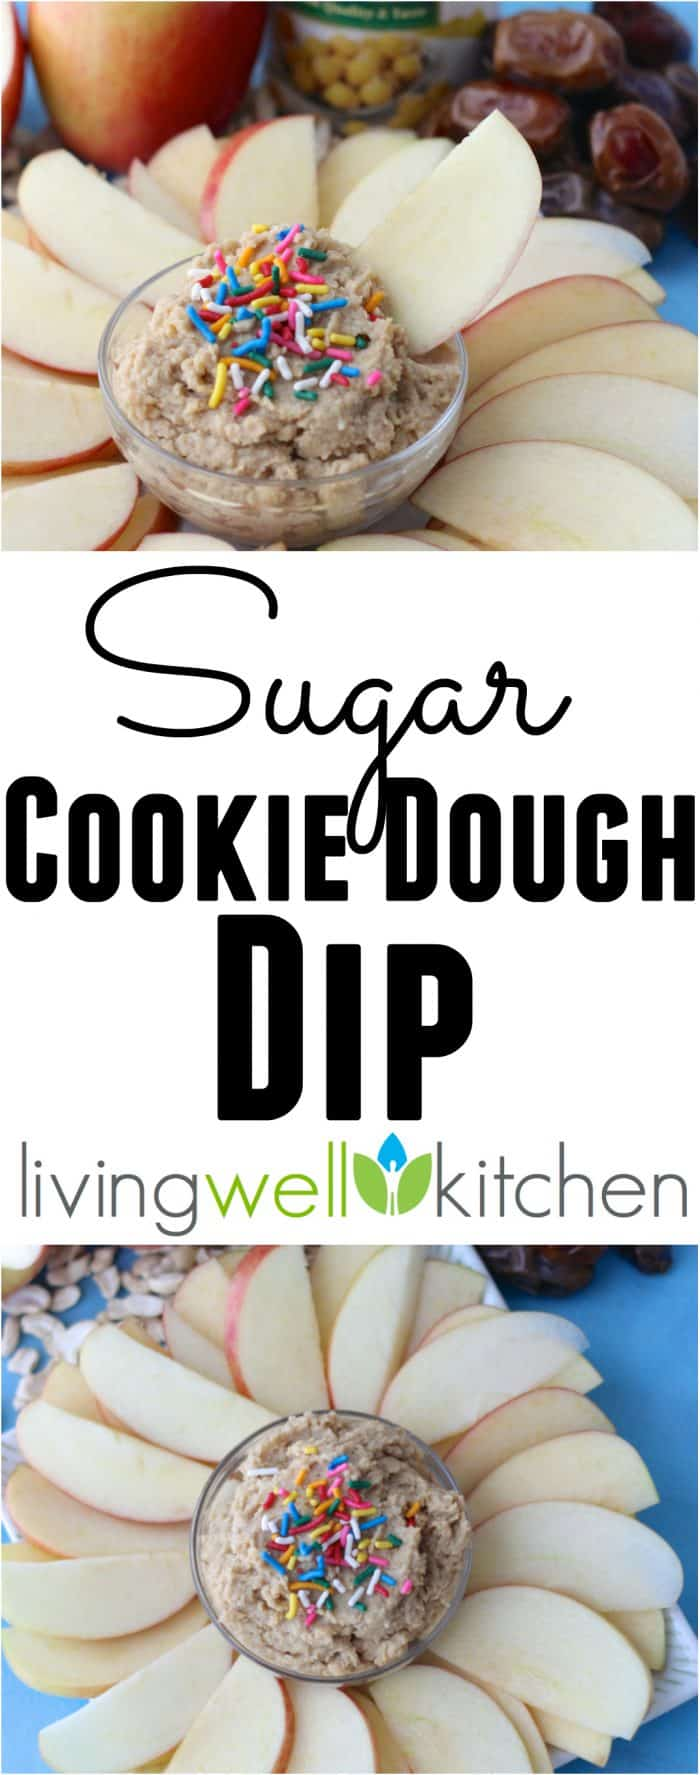 No Sugar Added Sugar Cookie Dough Dip from @memeinge is so tasty, you'll have no idea it's made with chickpeas and sweetened with dates! This recipe is vegan and gluten free